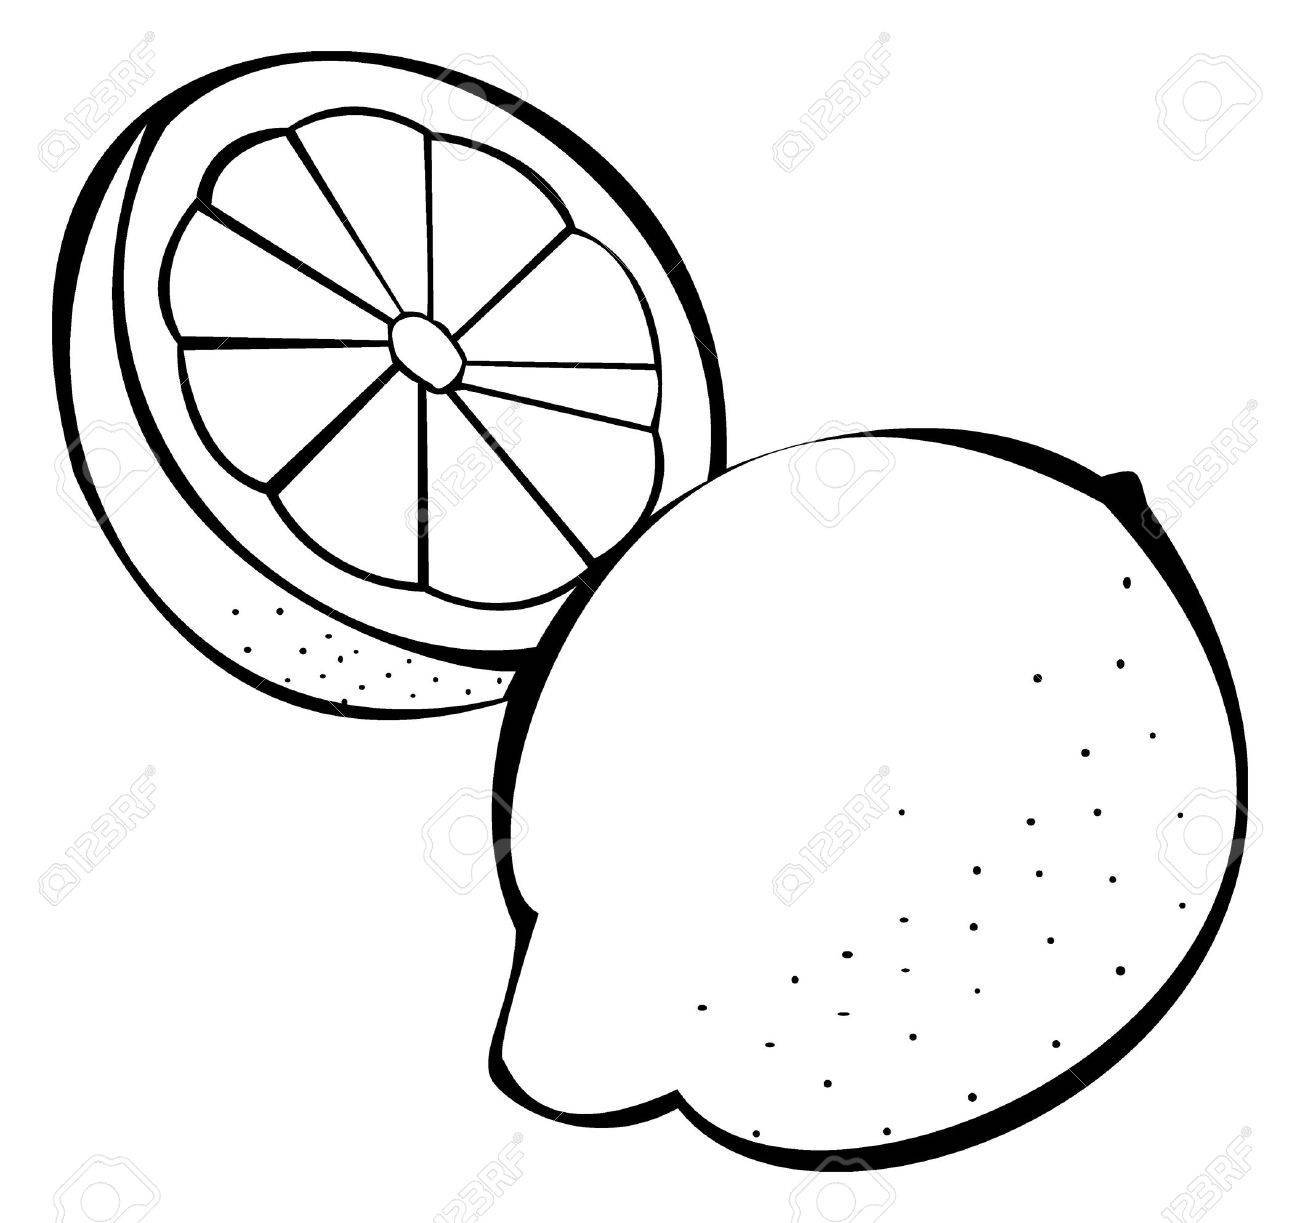 Lemon clipart black and white 1 » Clipart Portal.